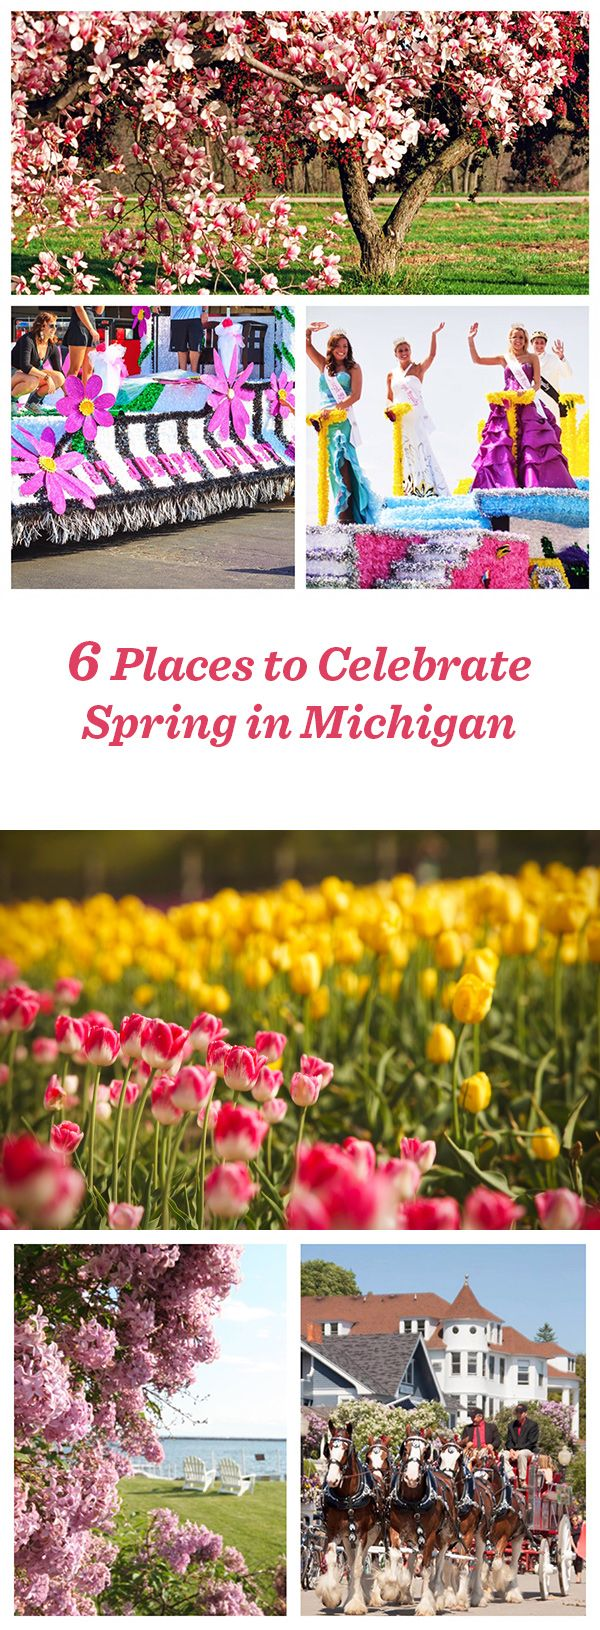 Holland, MI-Tulip Time Festival May 2-9. Mackinac Island- Lilac Festival starts June 5